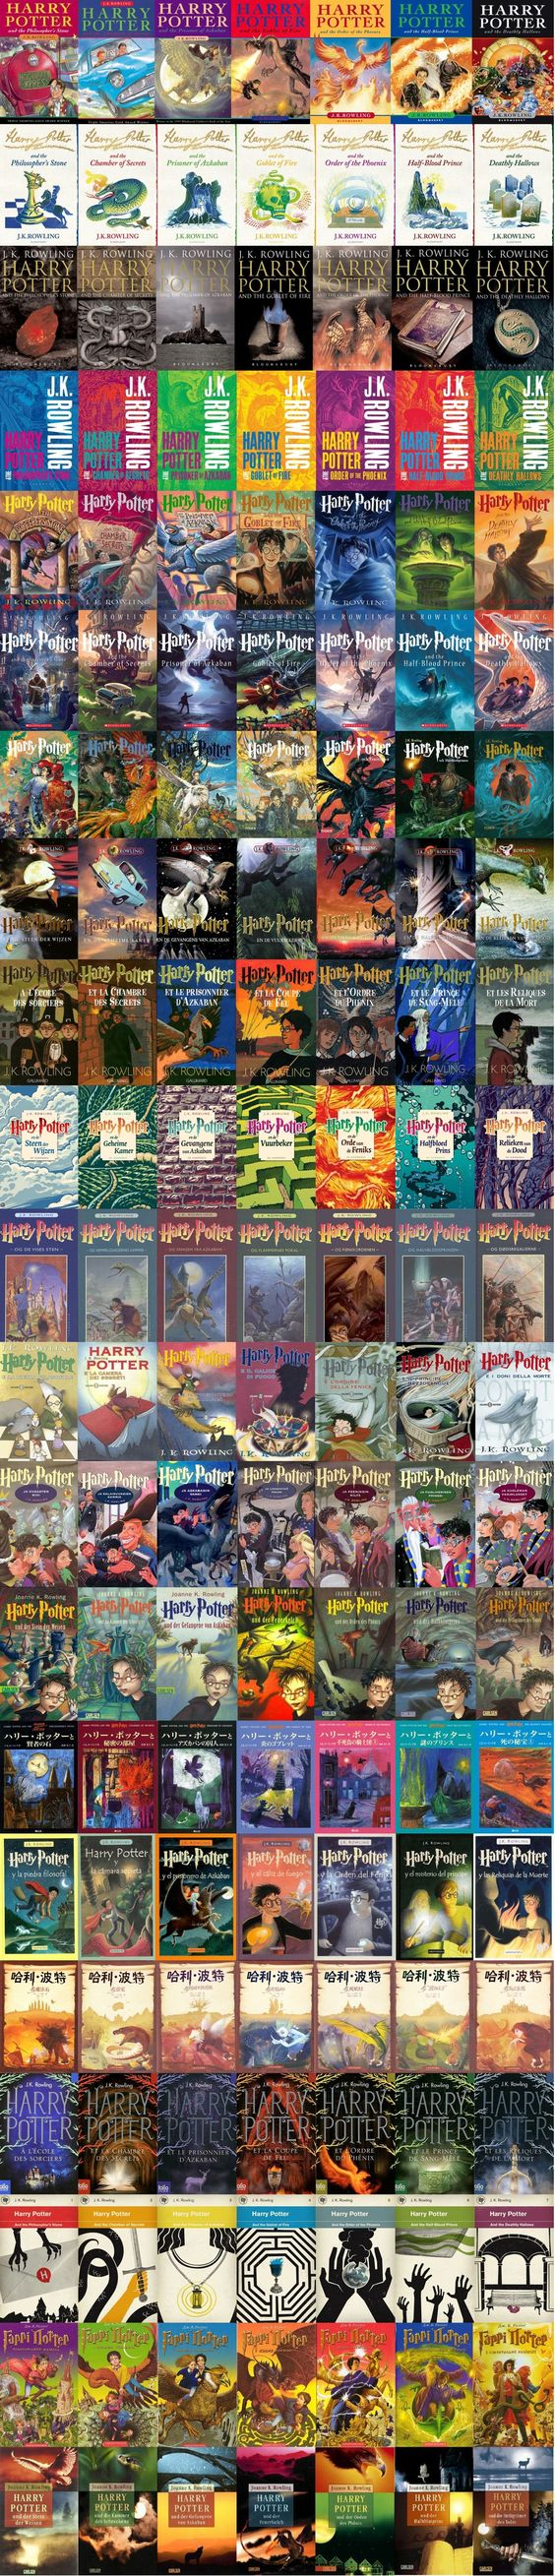 21 'Harry Potter' covers from around the world. I'm sorry what?? I want them all!!!